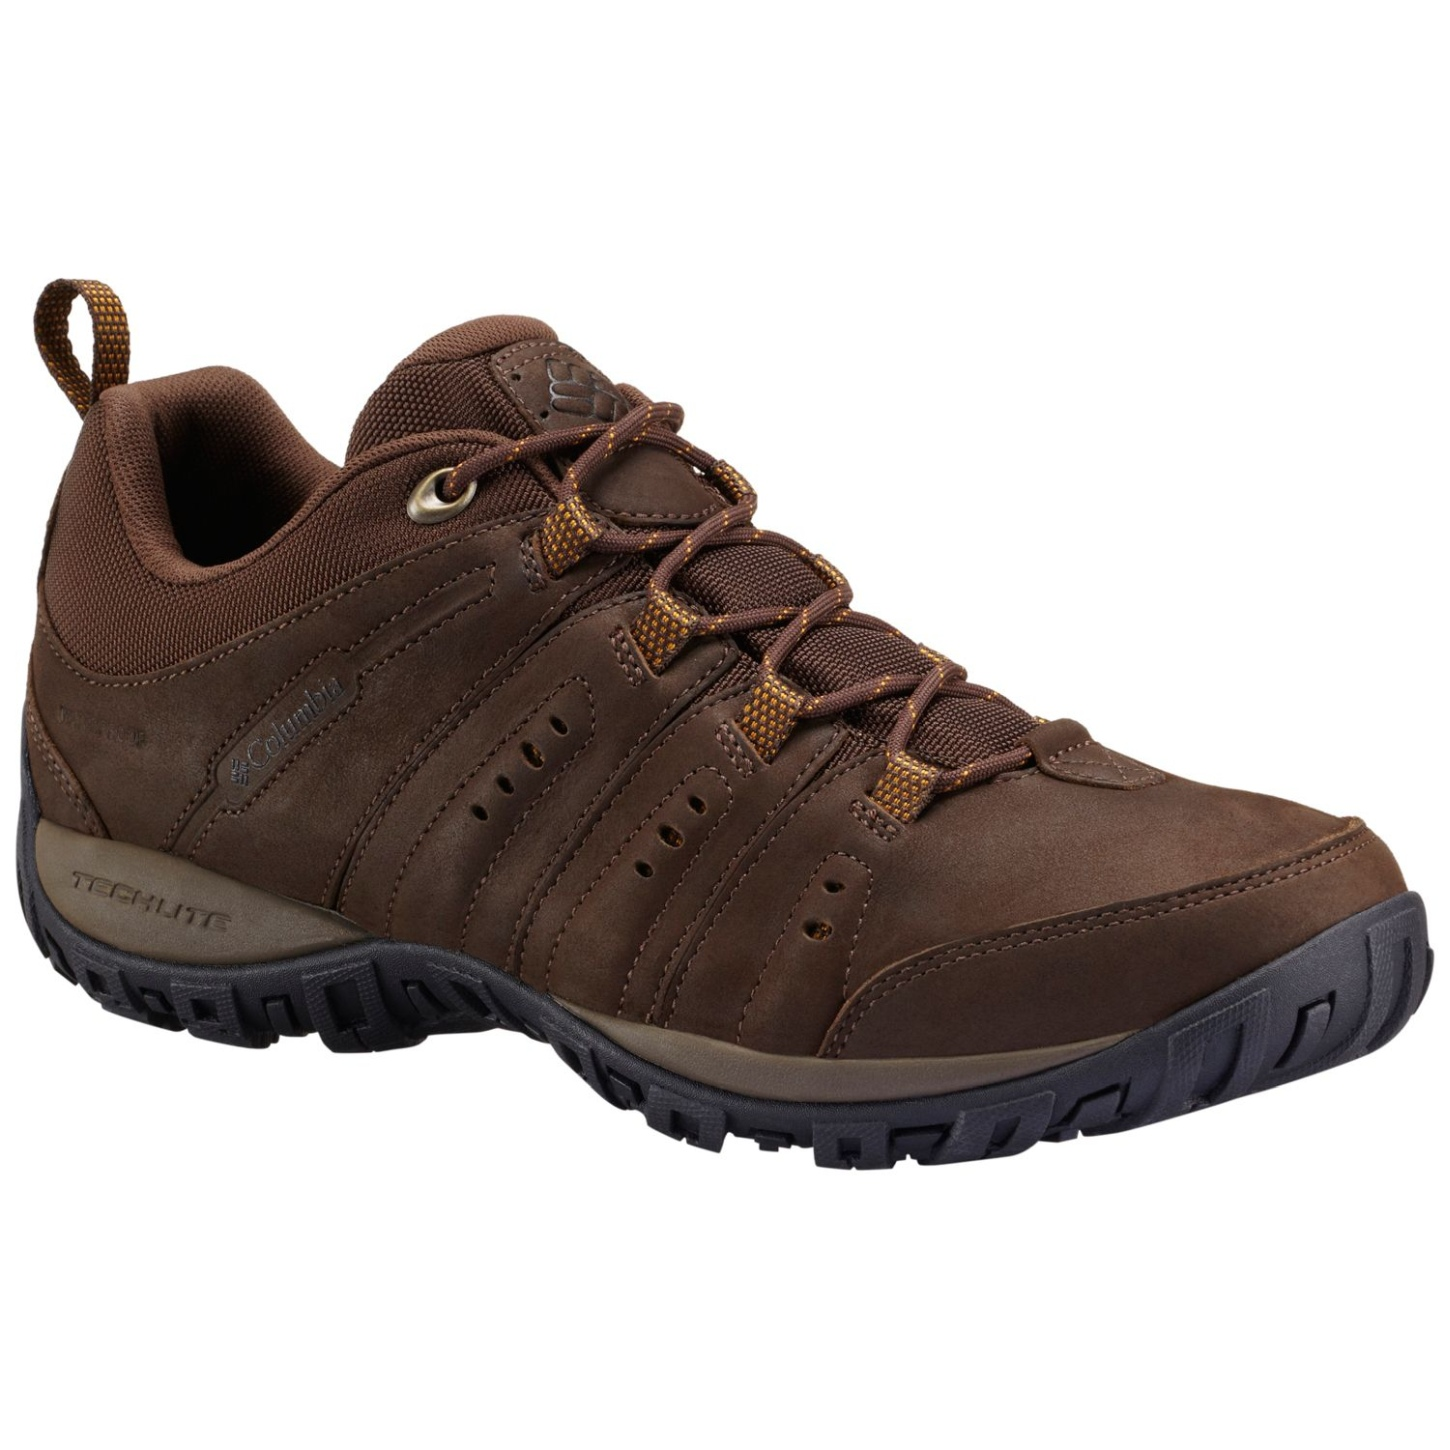 Columbia Men's Peakfreak Nomad Plus Waterproof Shoes Cordovan, Squash-30